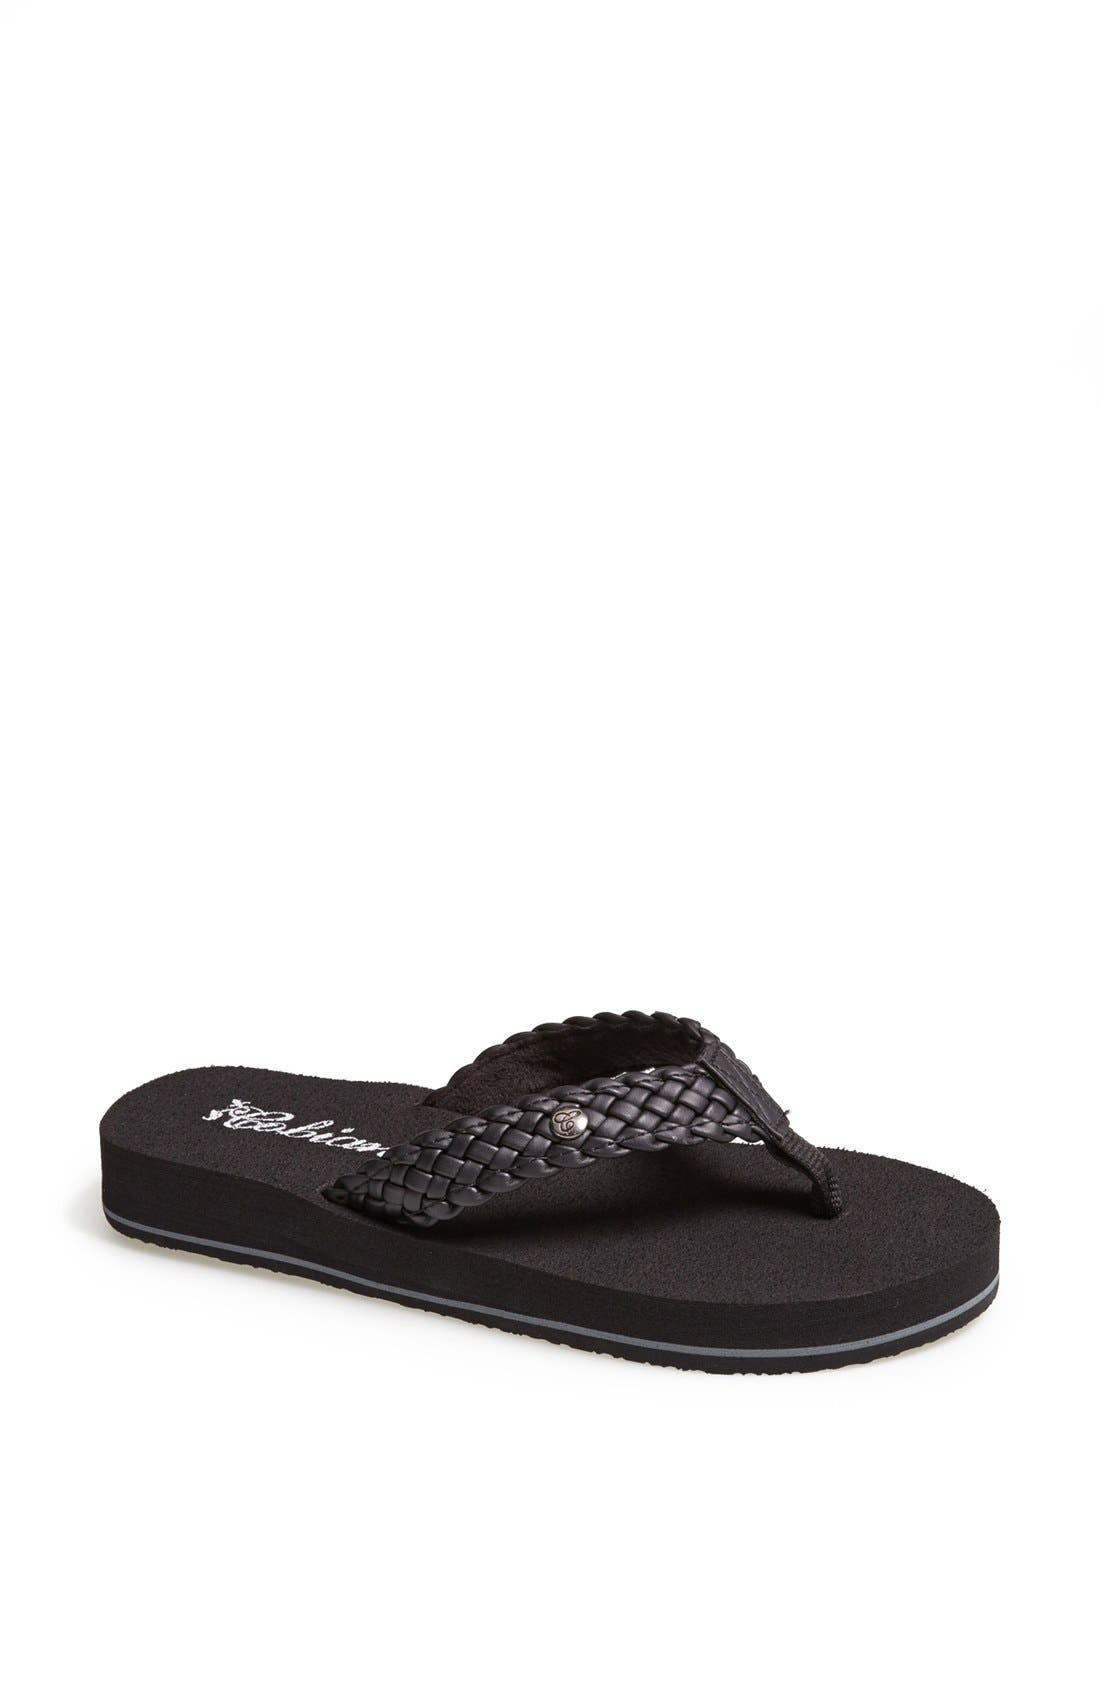 Main Image - Cobian 'Braided Bounce' Flip Flop